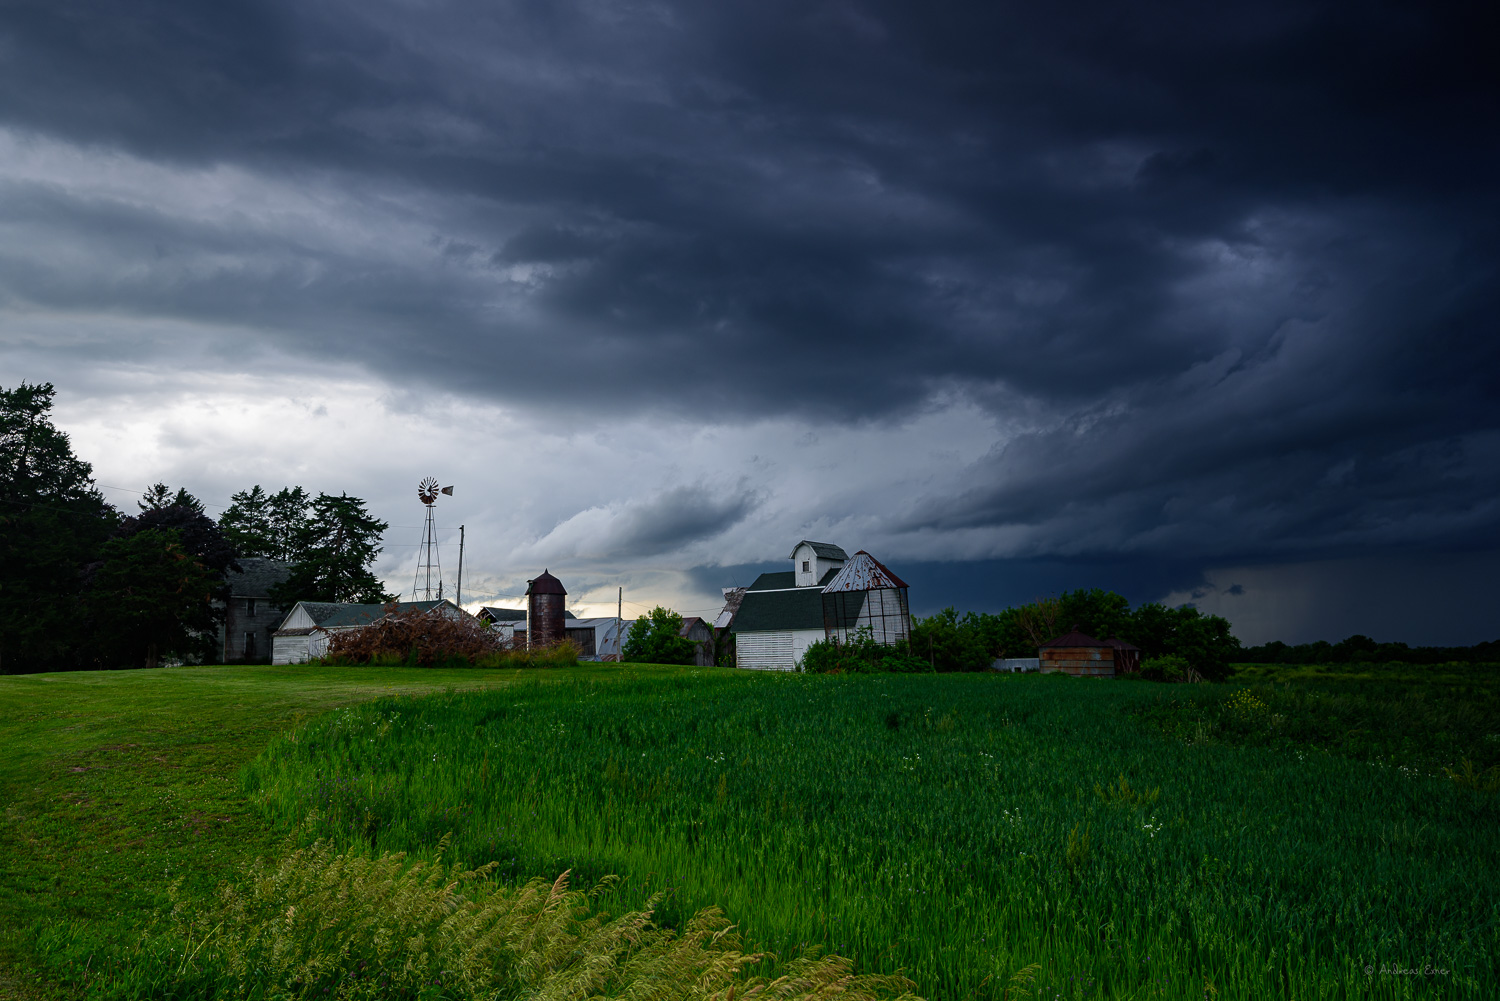 Farm on a hill with clouds, near Sherrill, Iowa